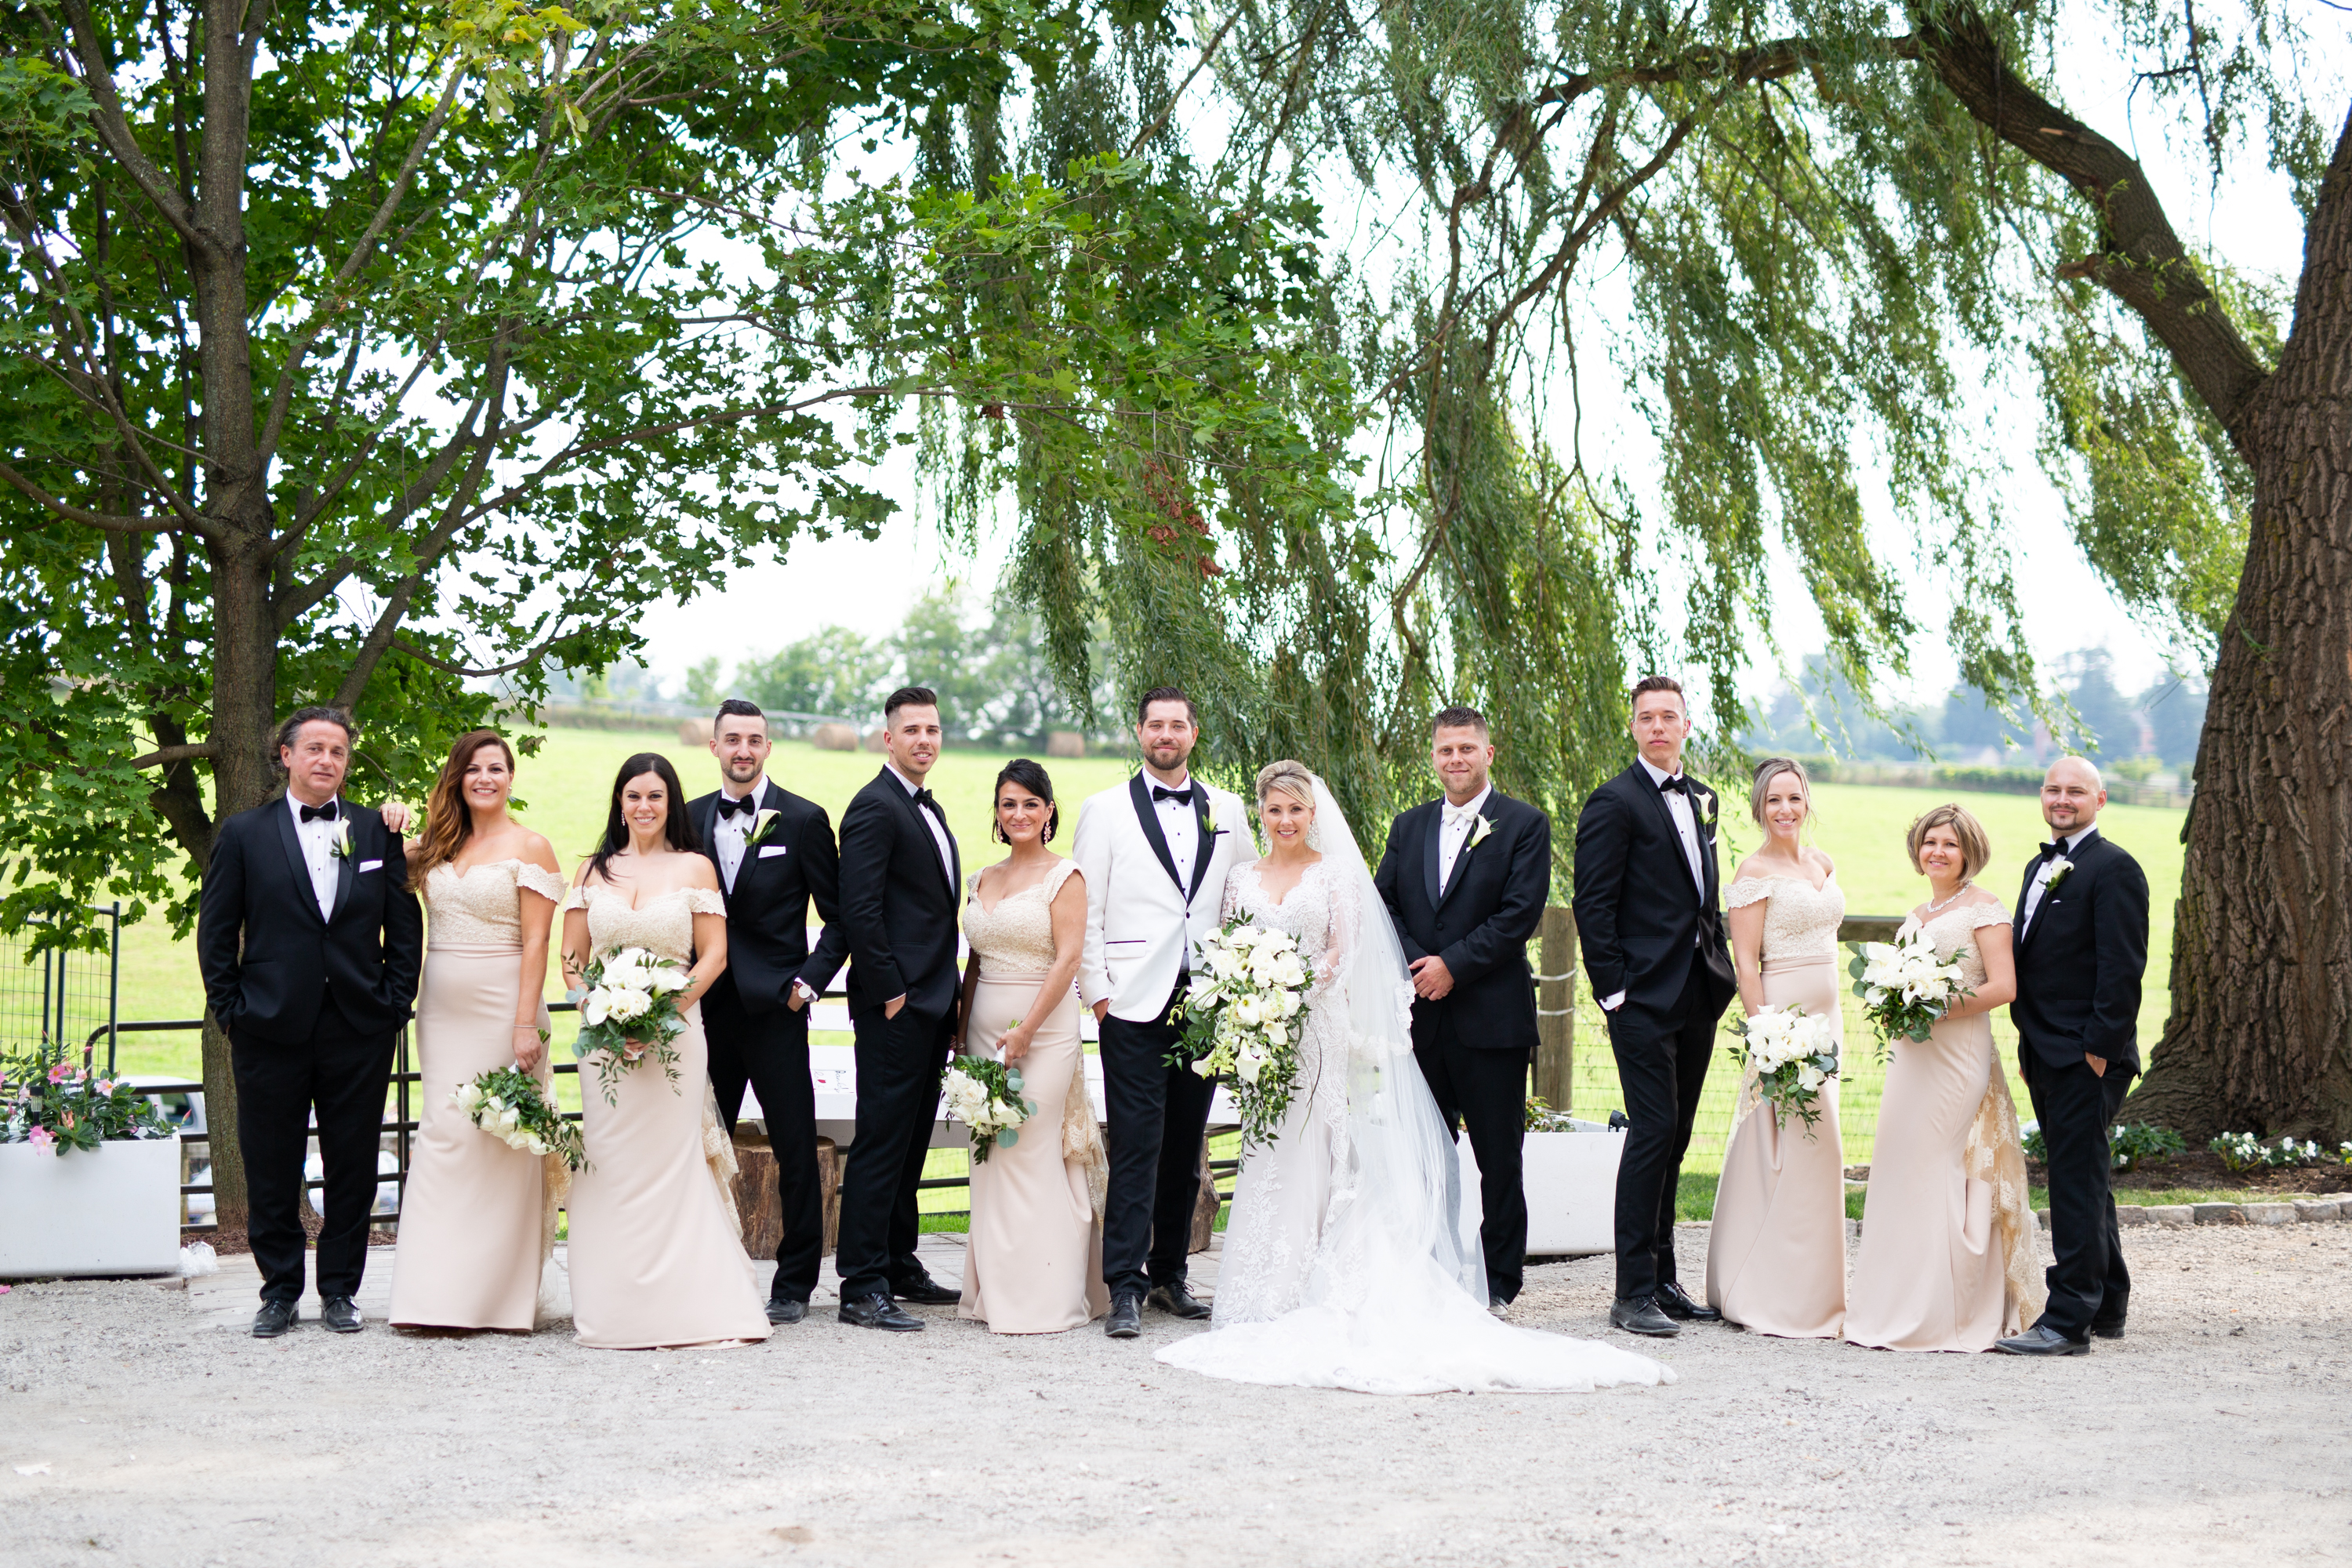 Bridal Party Wedding Party Zsuzsi Pal Photography Toronto Wedding